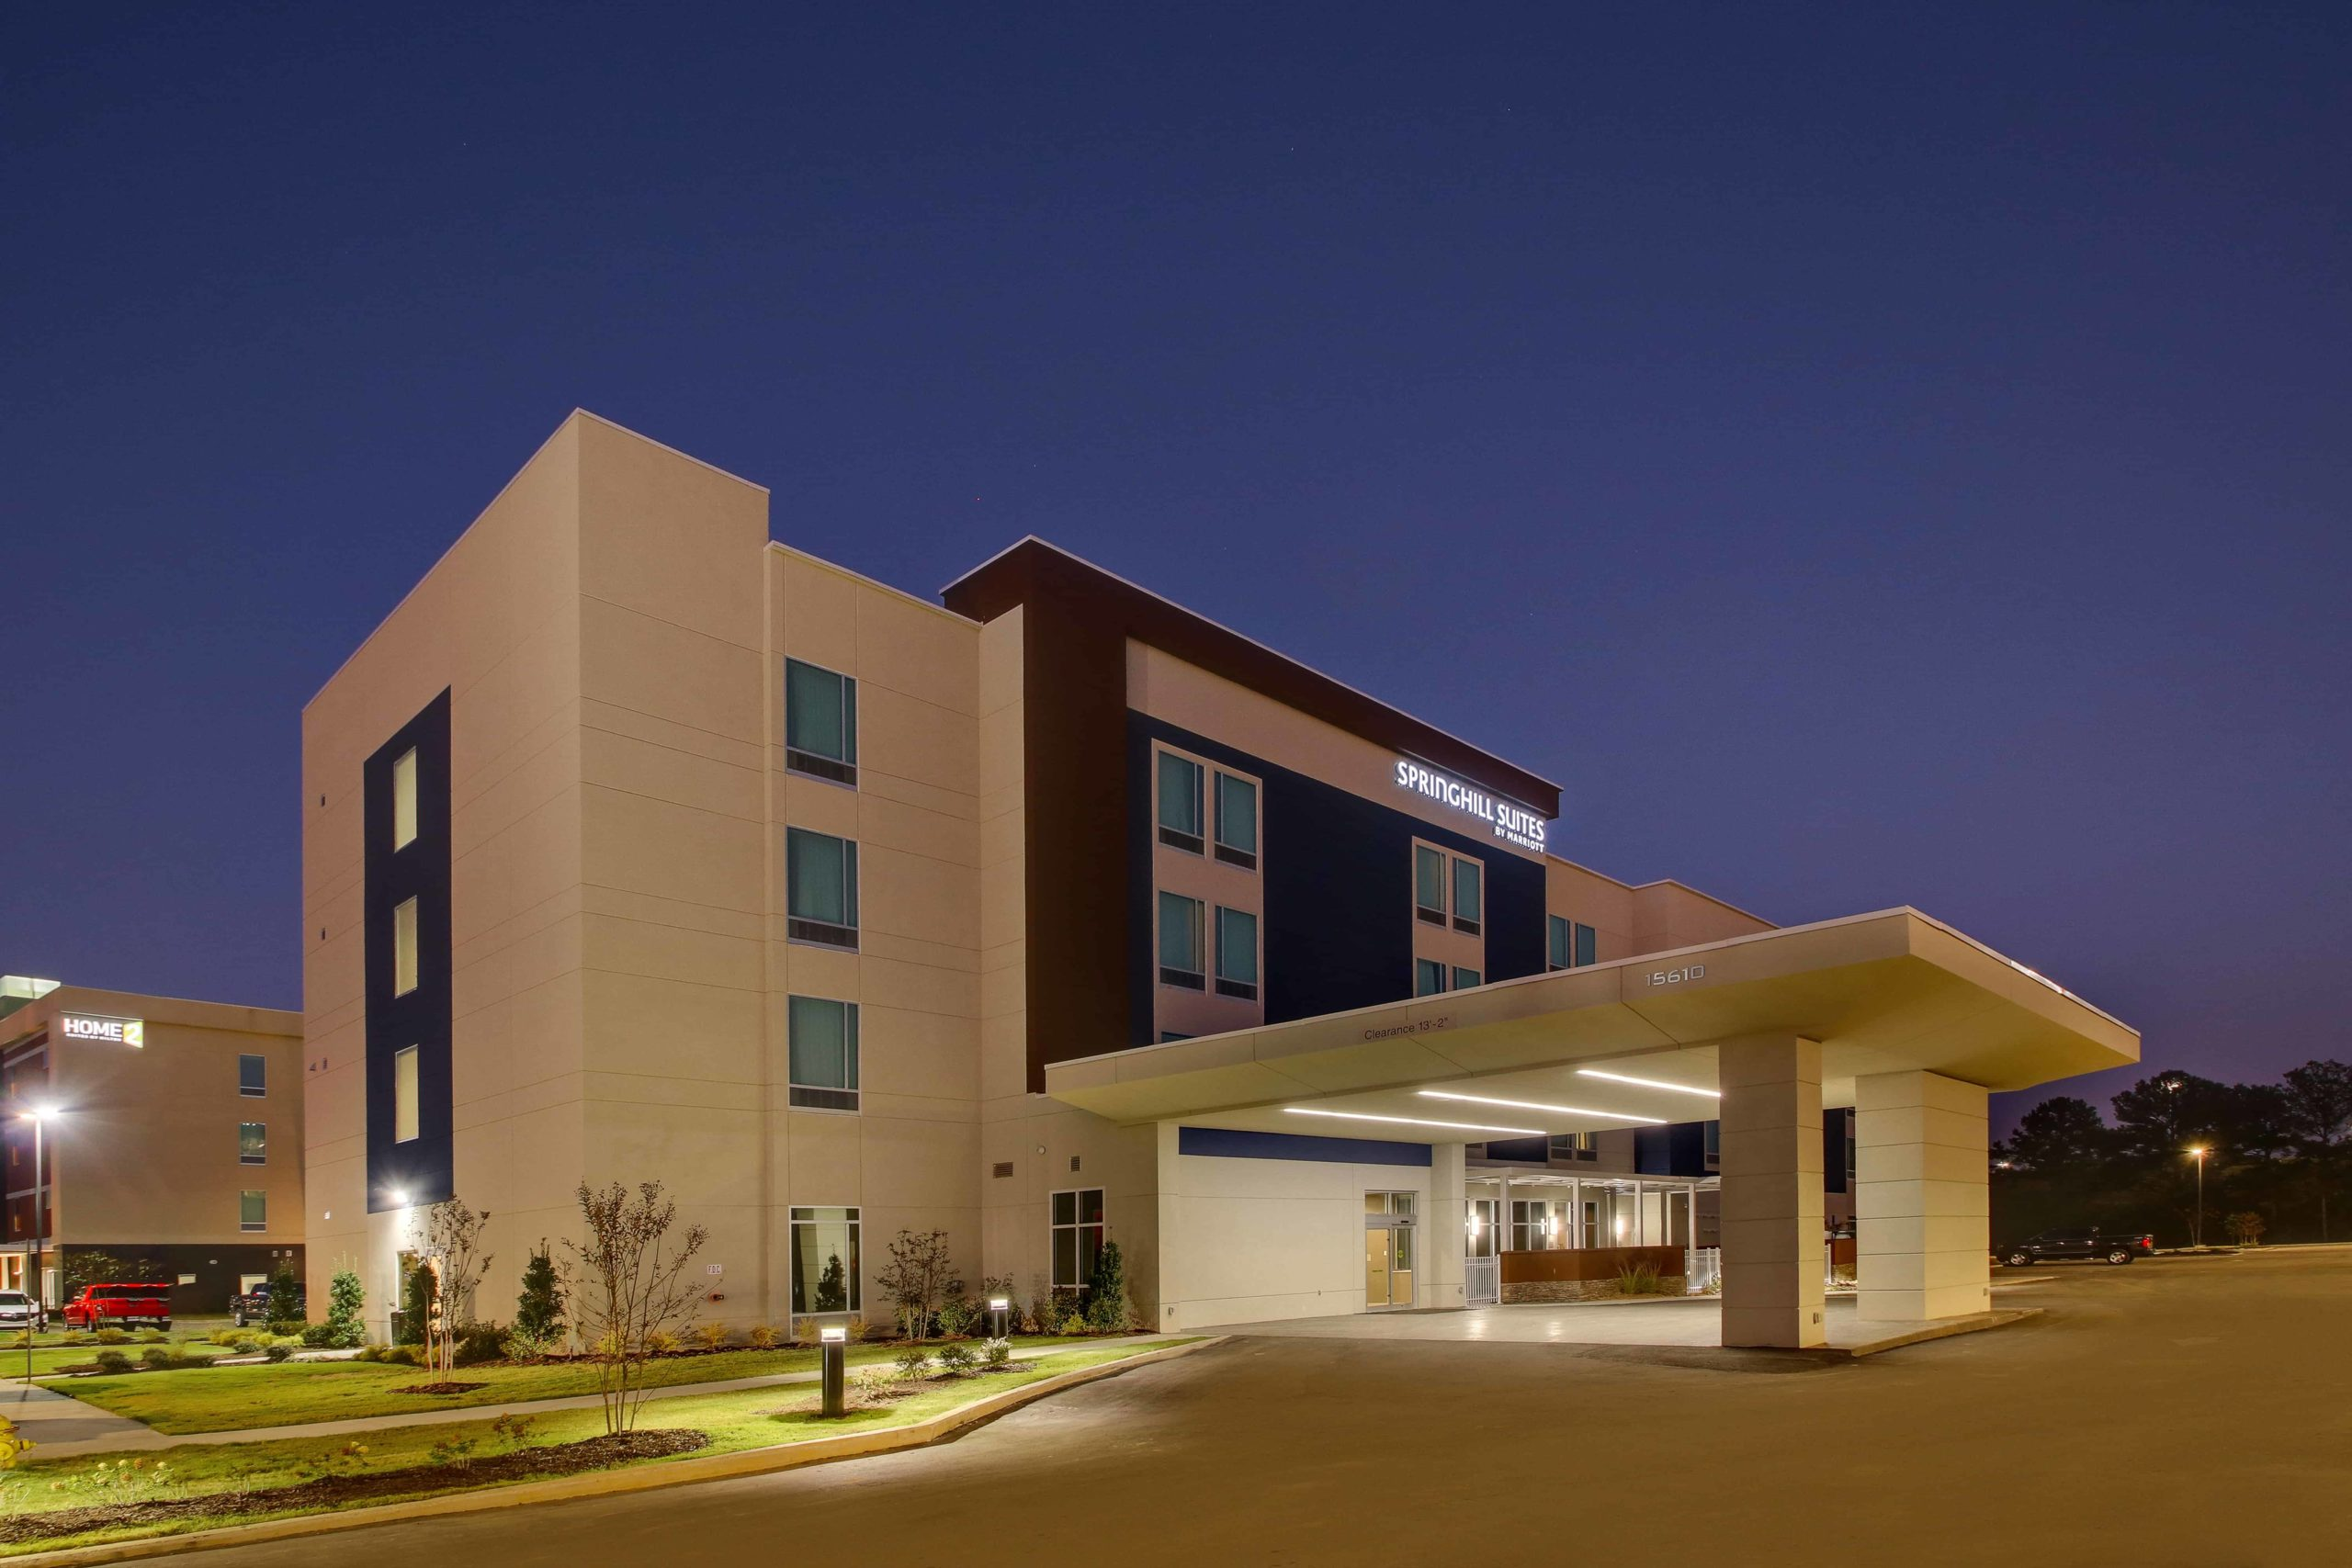 Marriott approved Hotel Photography of springHill Suites Gulfport